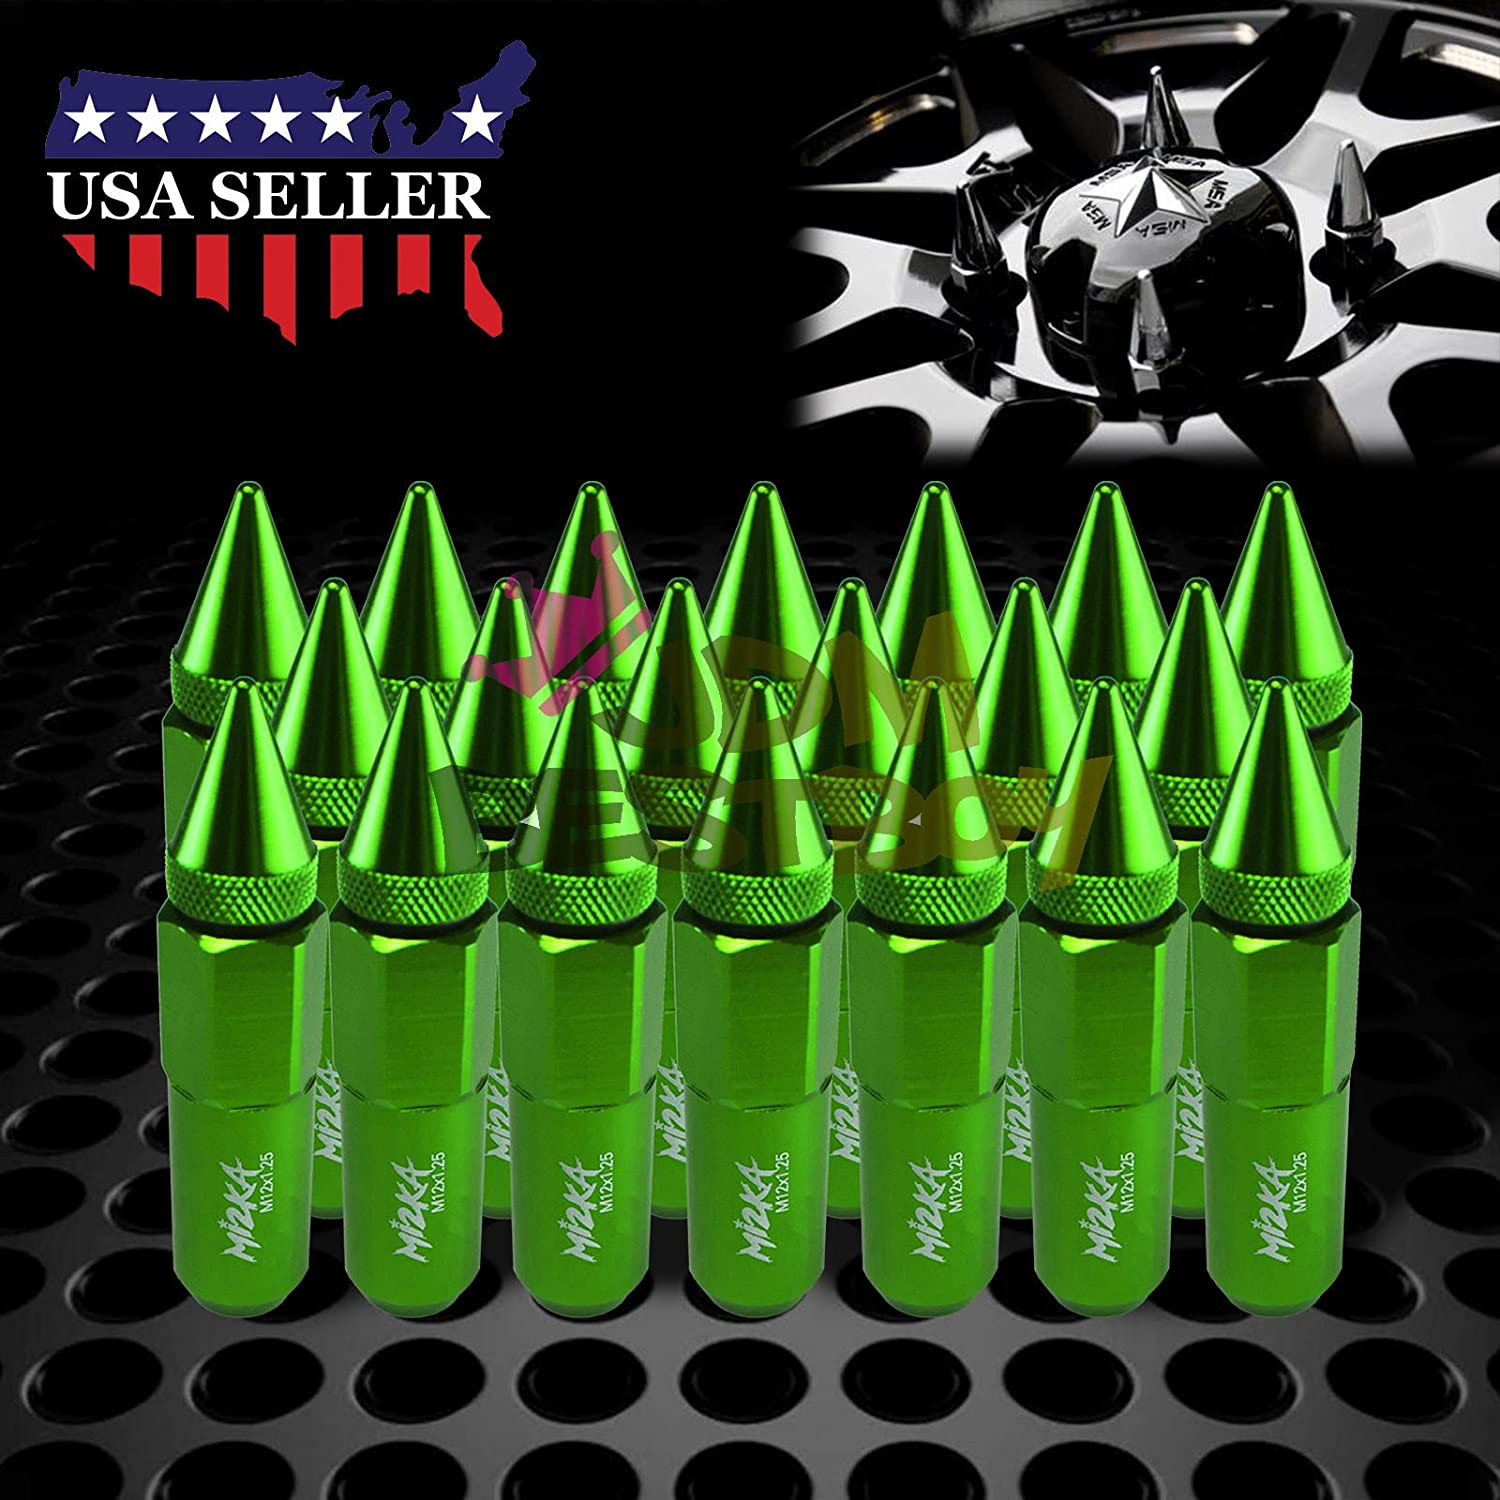 JDMBESTBOY Green 20 PCS M12x1.25 Lug Nuts Spiked 60mm Extended Tuner Aluminum Wheels Rims Cap WN03